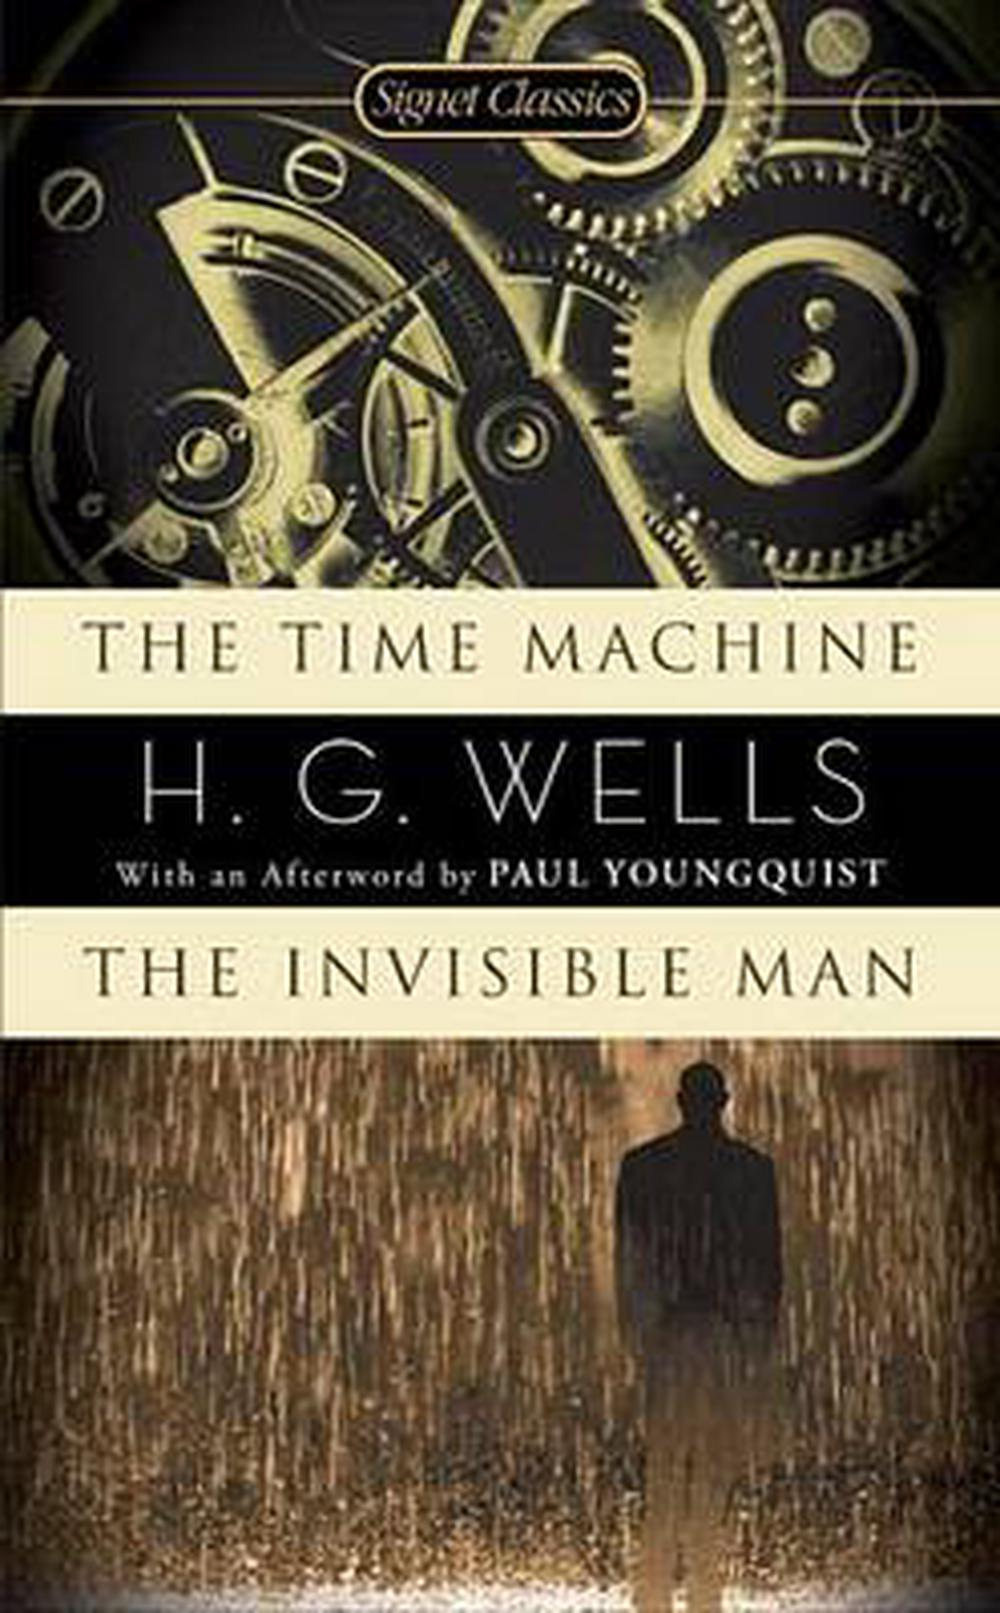 the downfall of a society in the time machine by h g wells Start studying the time machine hg wells learn vocabulary, terms, and more with flashcards, games, and other study tools.